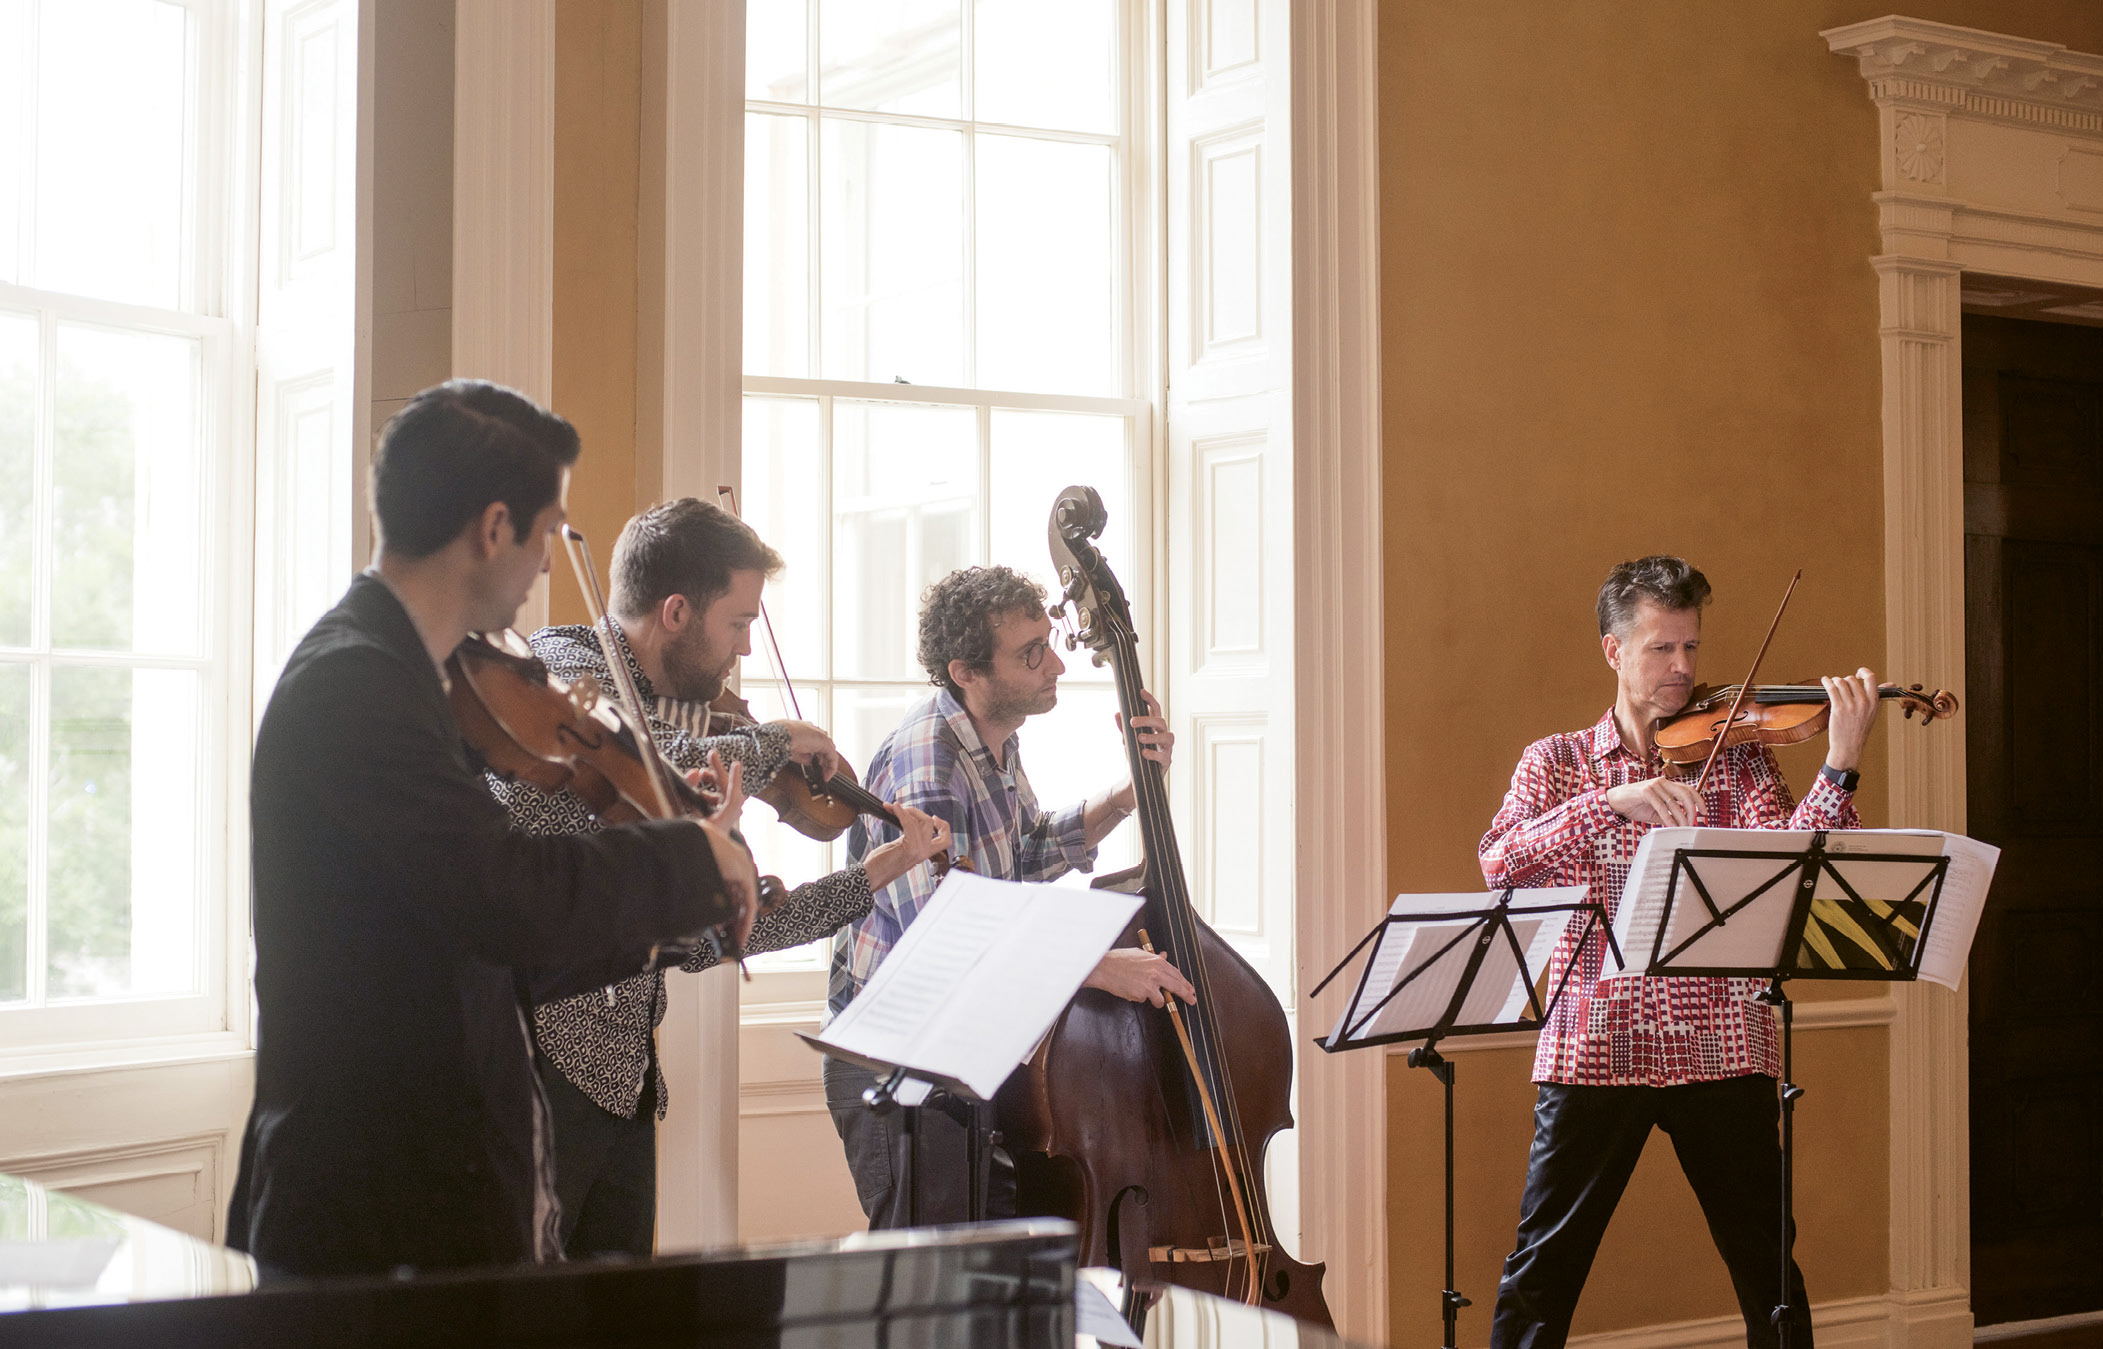 5 p.m.  Practice Makes Perfect: Grammy-winning violist Masumi Per Rostad; St. Lawrence String Quartet violinist Owen Dalby; and bassist, composer, and Juilliard faculty member Doug Balliett rehearse with Nuttall at Spoleto headquarters before a special donor party and concert.